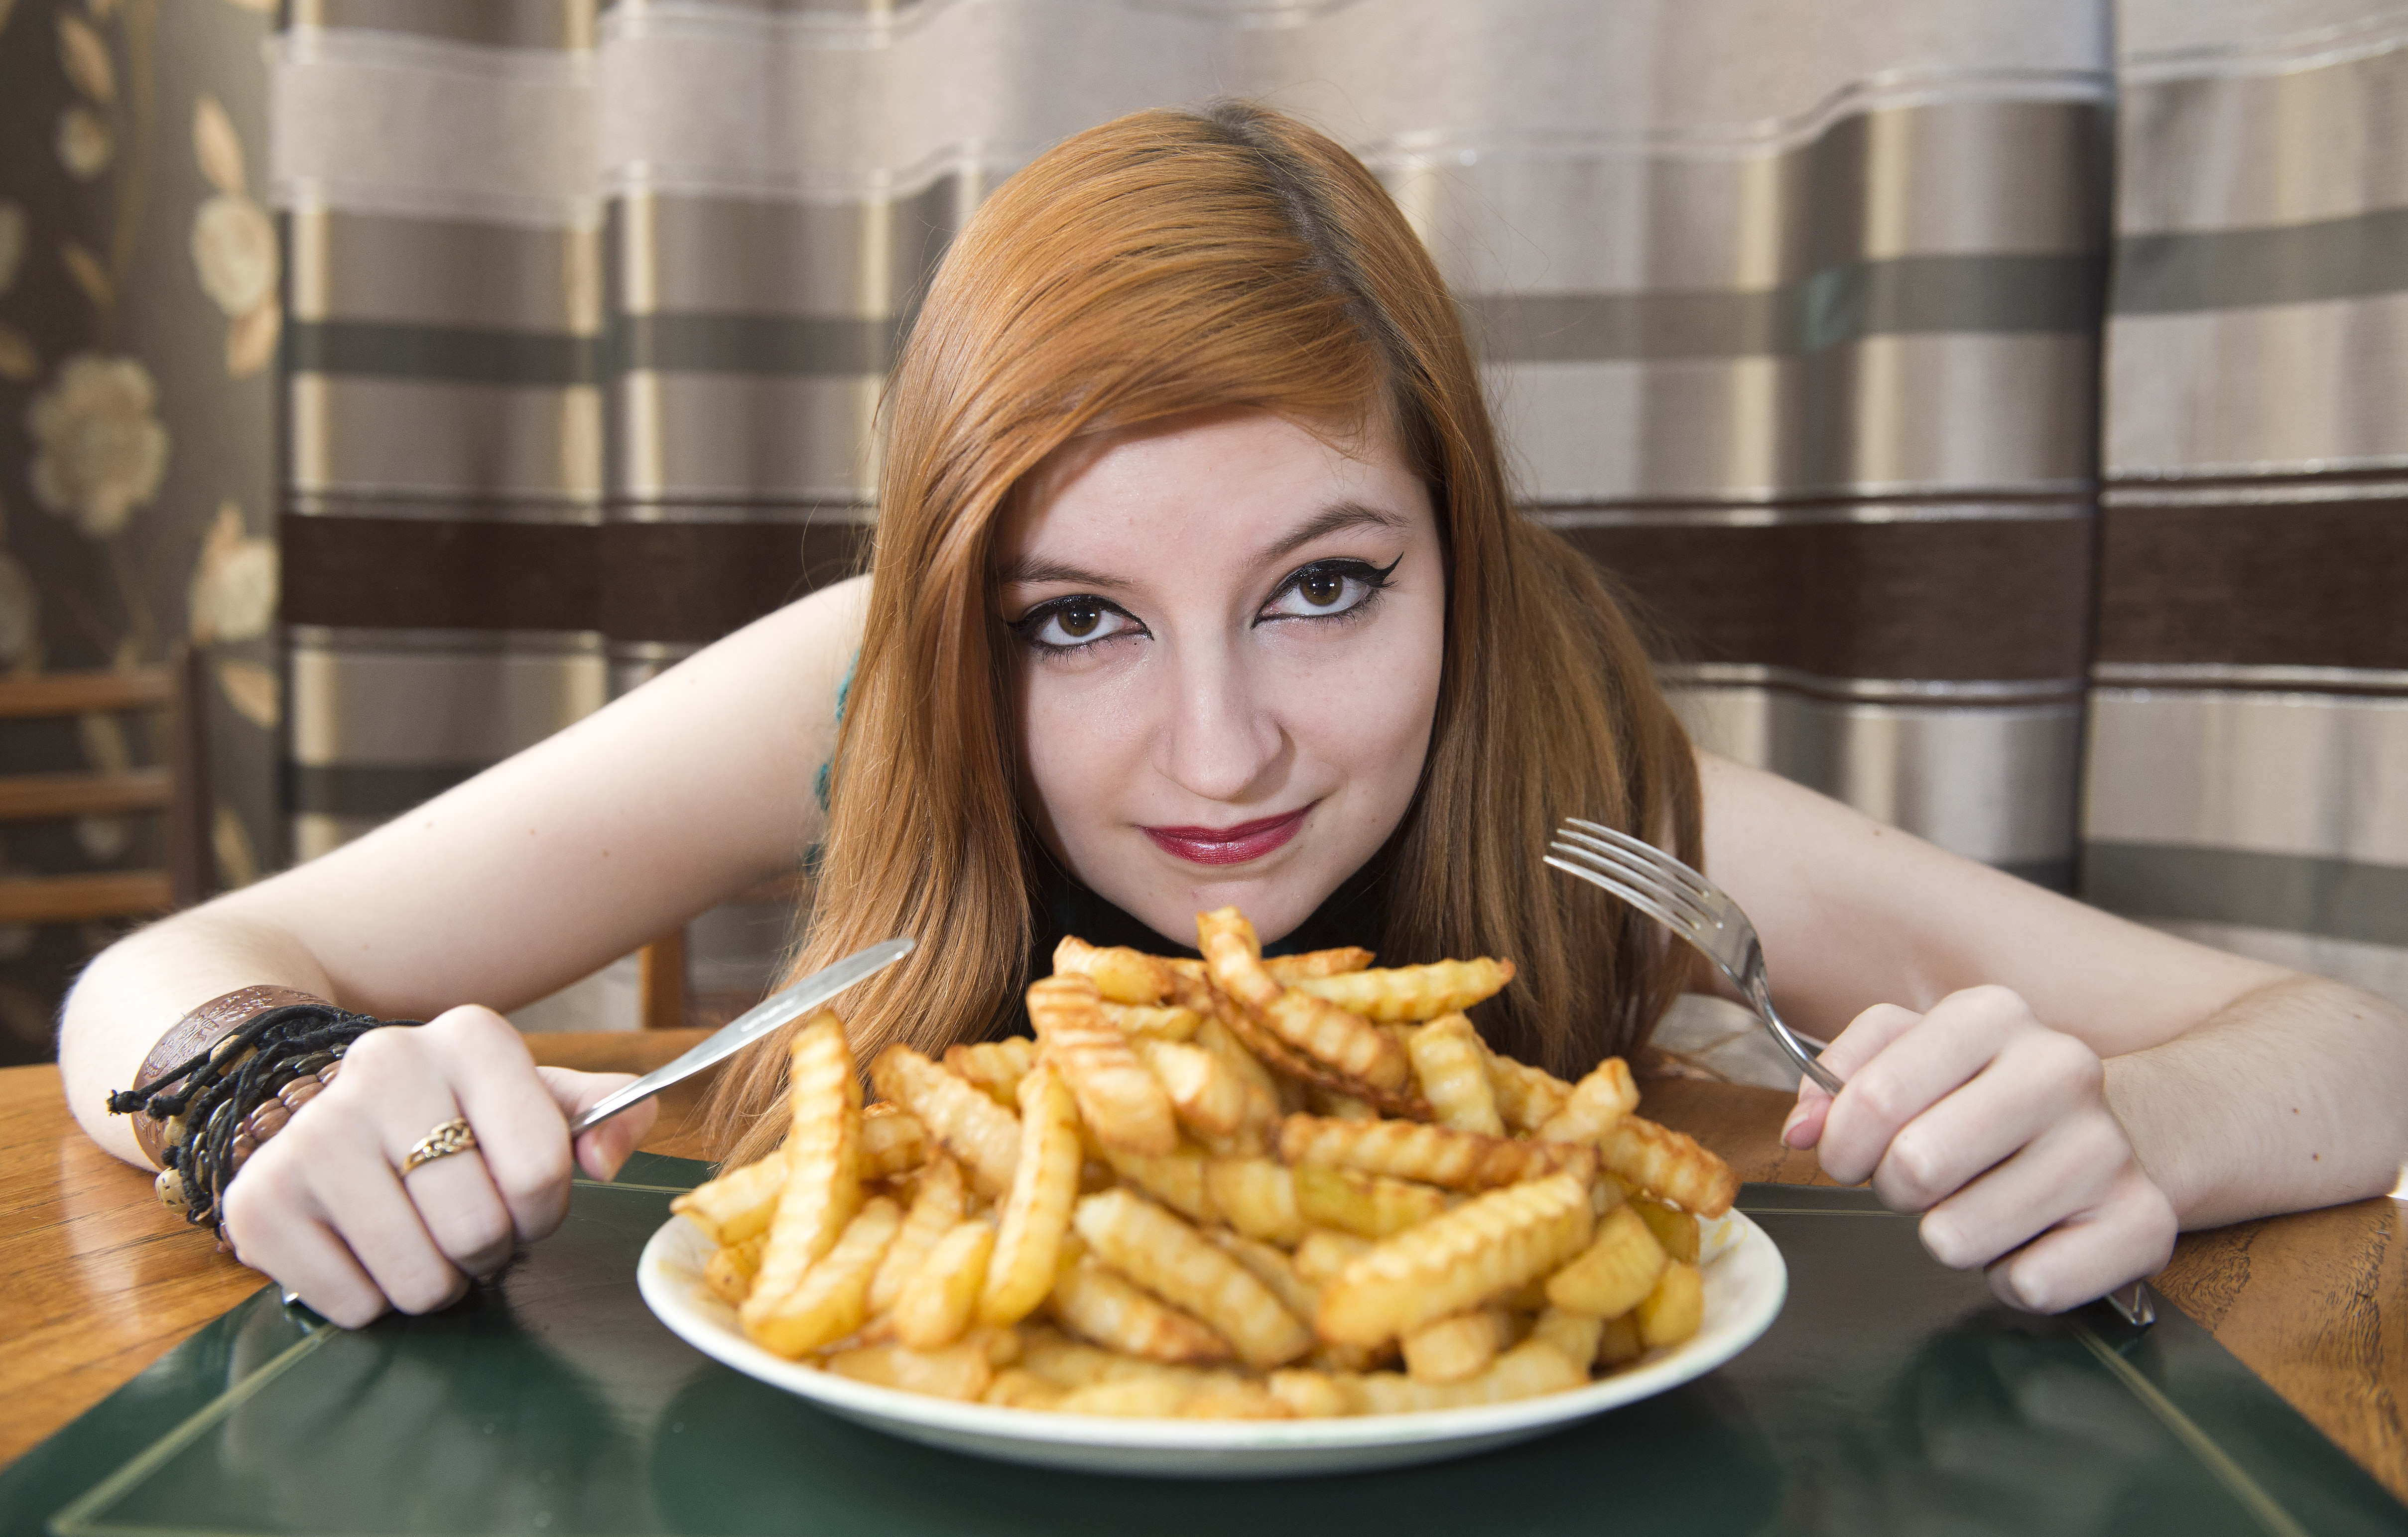 PIC FROM CATERS NEWS - (PICTURED: Jennifer Radigan with her chips ) - A pretty girl who suffers from a food phobia has lived off a diet of chips for five years because all other foods make her sick to the stomach. Jennifer Radigan, 17, eats mostly oven chips and is so repulsed by the thought of eating meat and vegetables, she often heaves at the sight of it. The teenager, from Galston, East Ayrshire in Scotland, is so fussy about what she eats; even the brands have to be right, with her typical daily diet consisting of a plate of McCain chips topped with cheddar cheese. A-level student Jennifer, who started refusing food from a very early age, says she used to be so ashamed of her phobia, she would starve herself at school, then later lie to her parents that she had eaten.